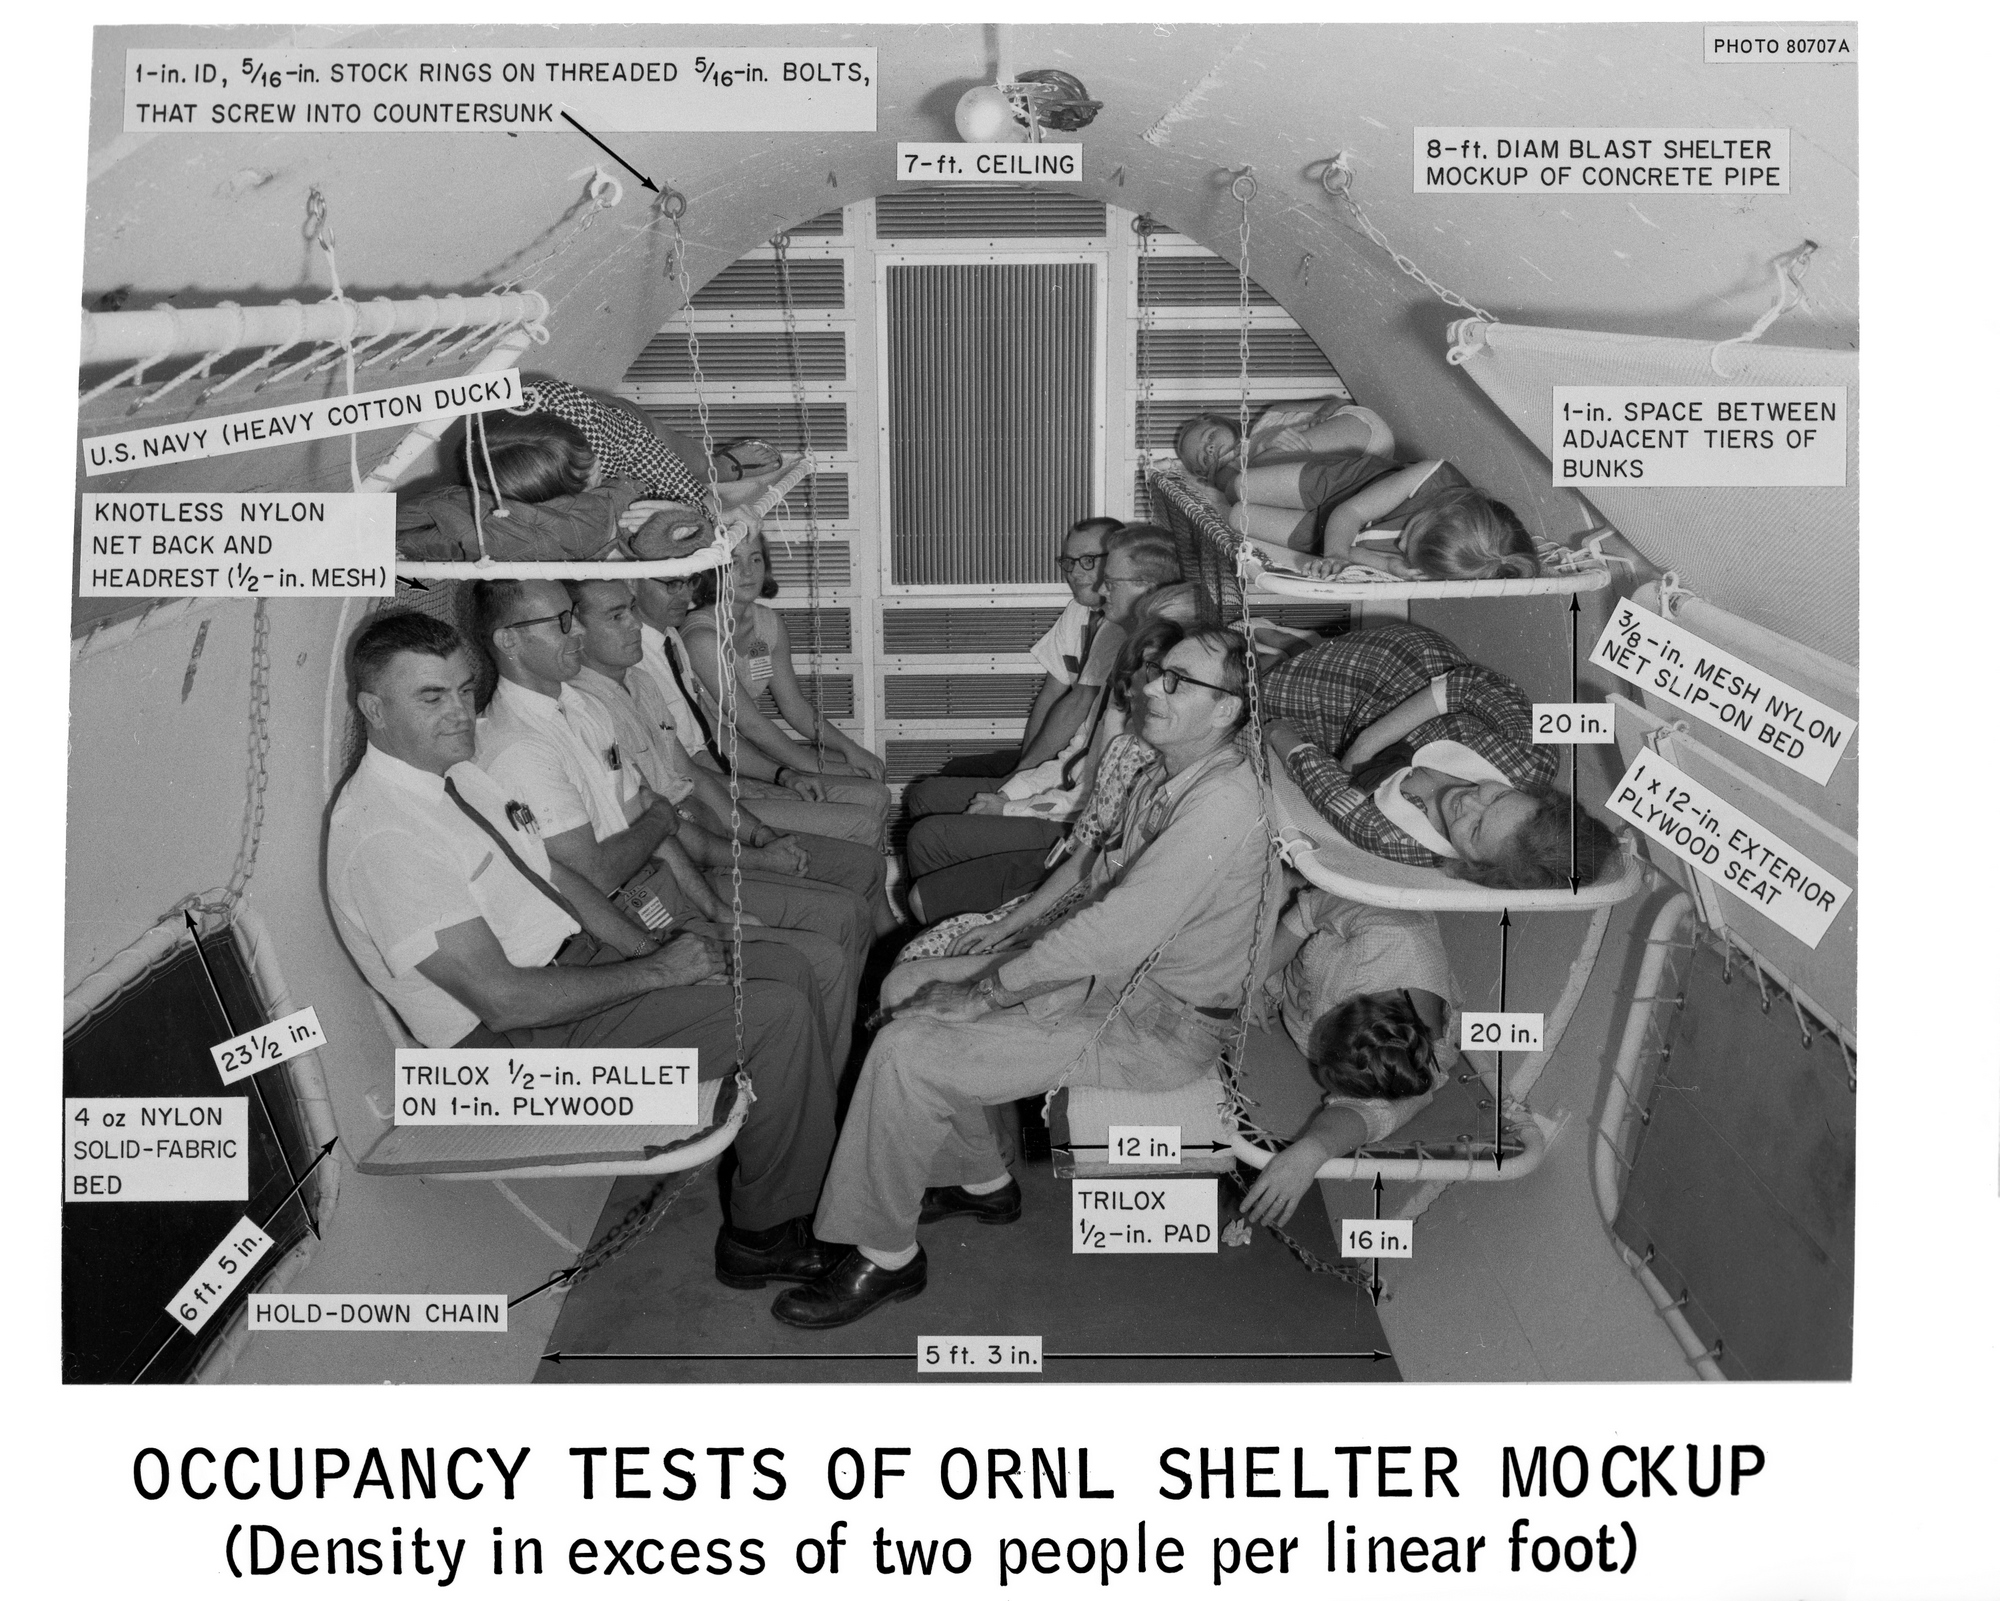 fallout shelters adventures in atomic tourism page 2